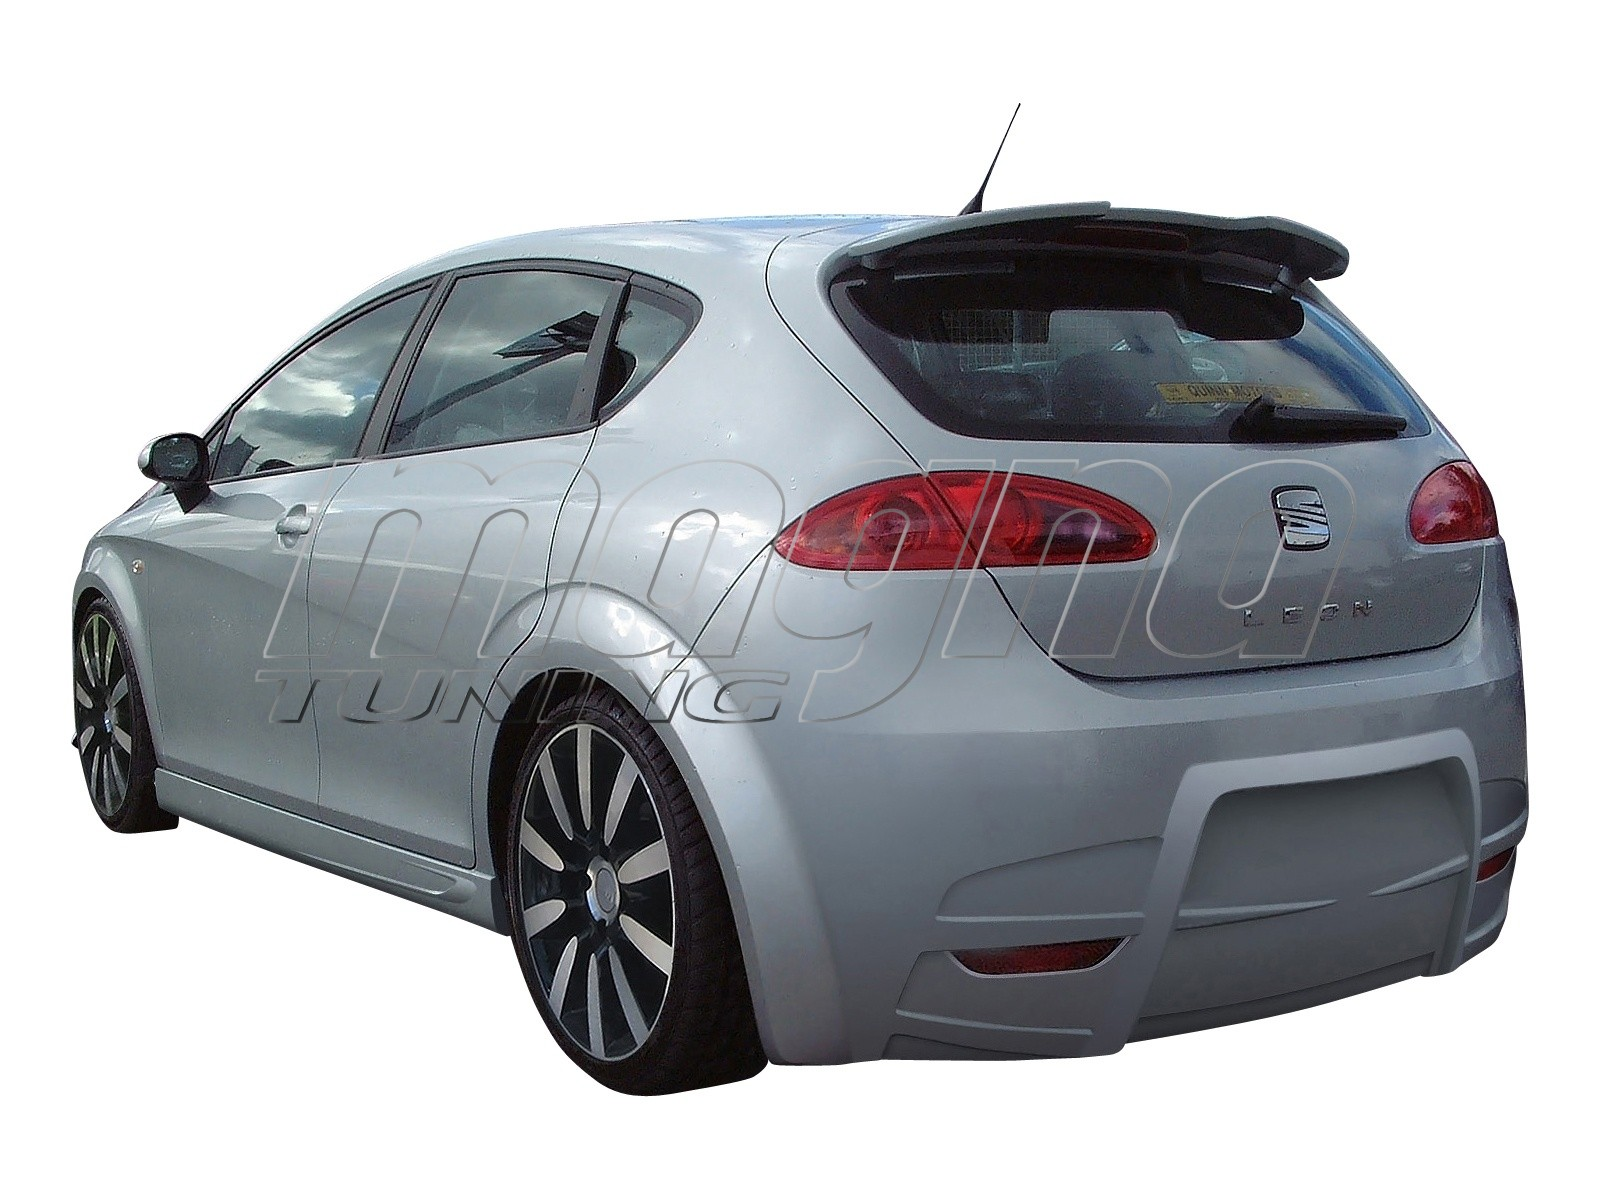 seat leon 1p ed1 body kit. Black Bedroom Furniture Sets. Home Design Ideas